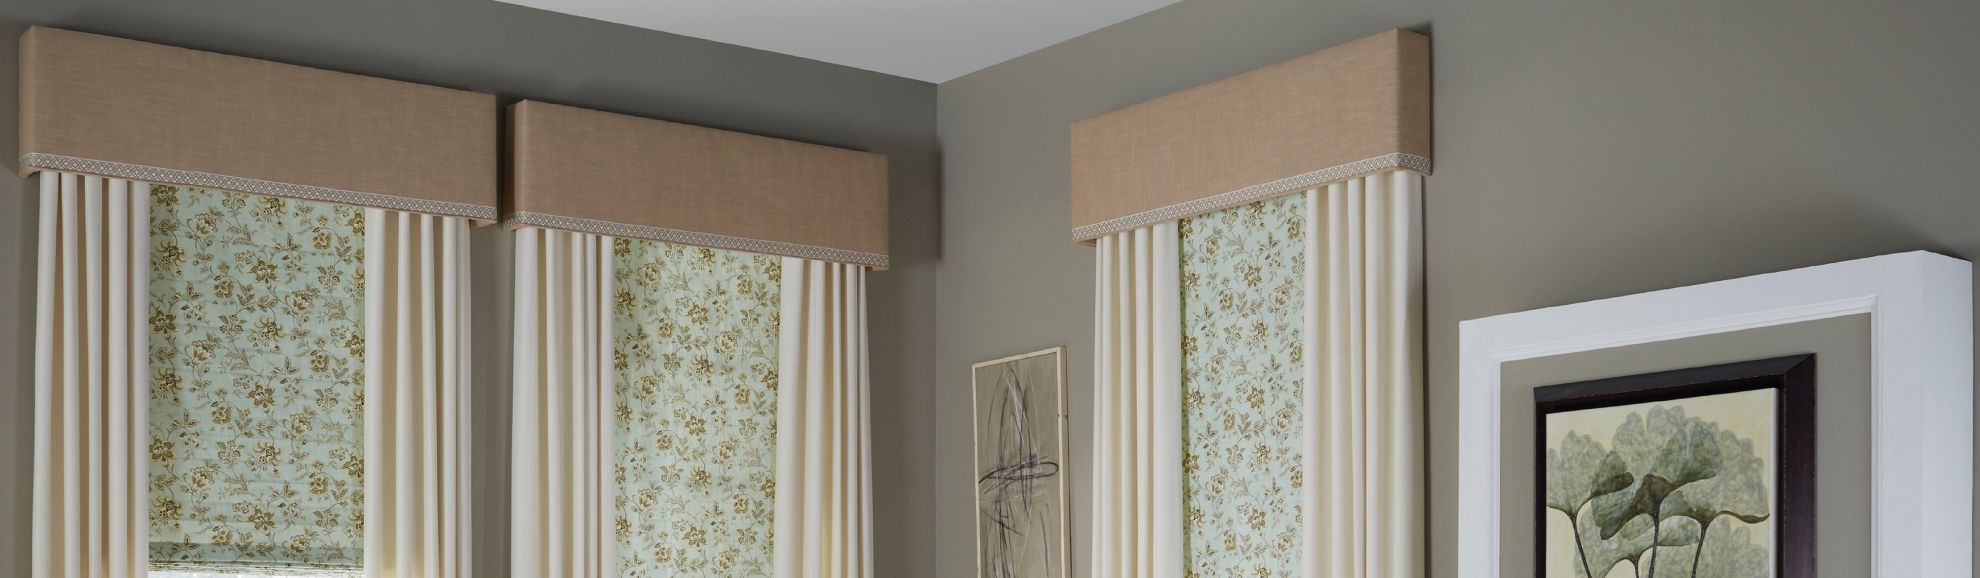 Fabric Cornices - Living Room